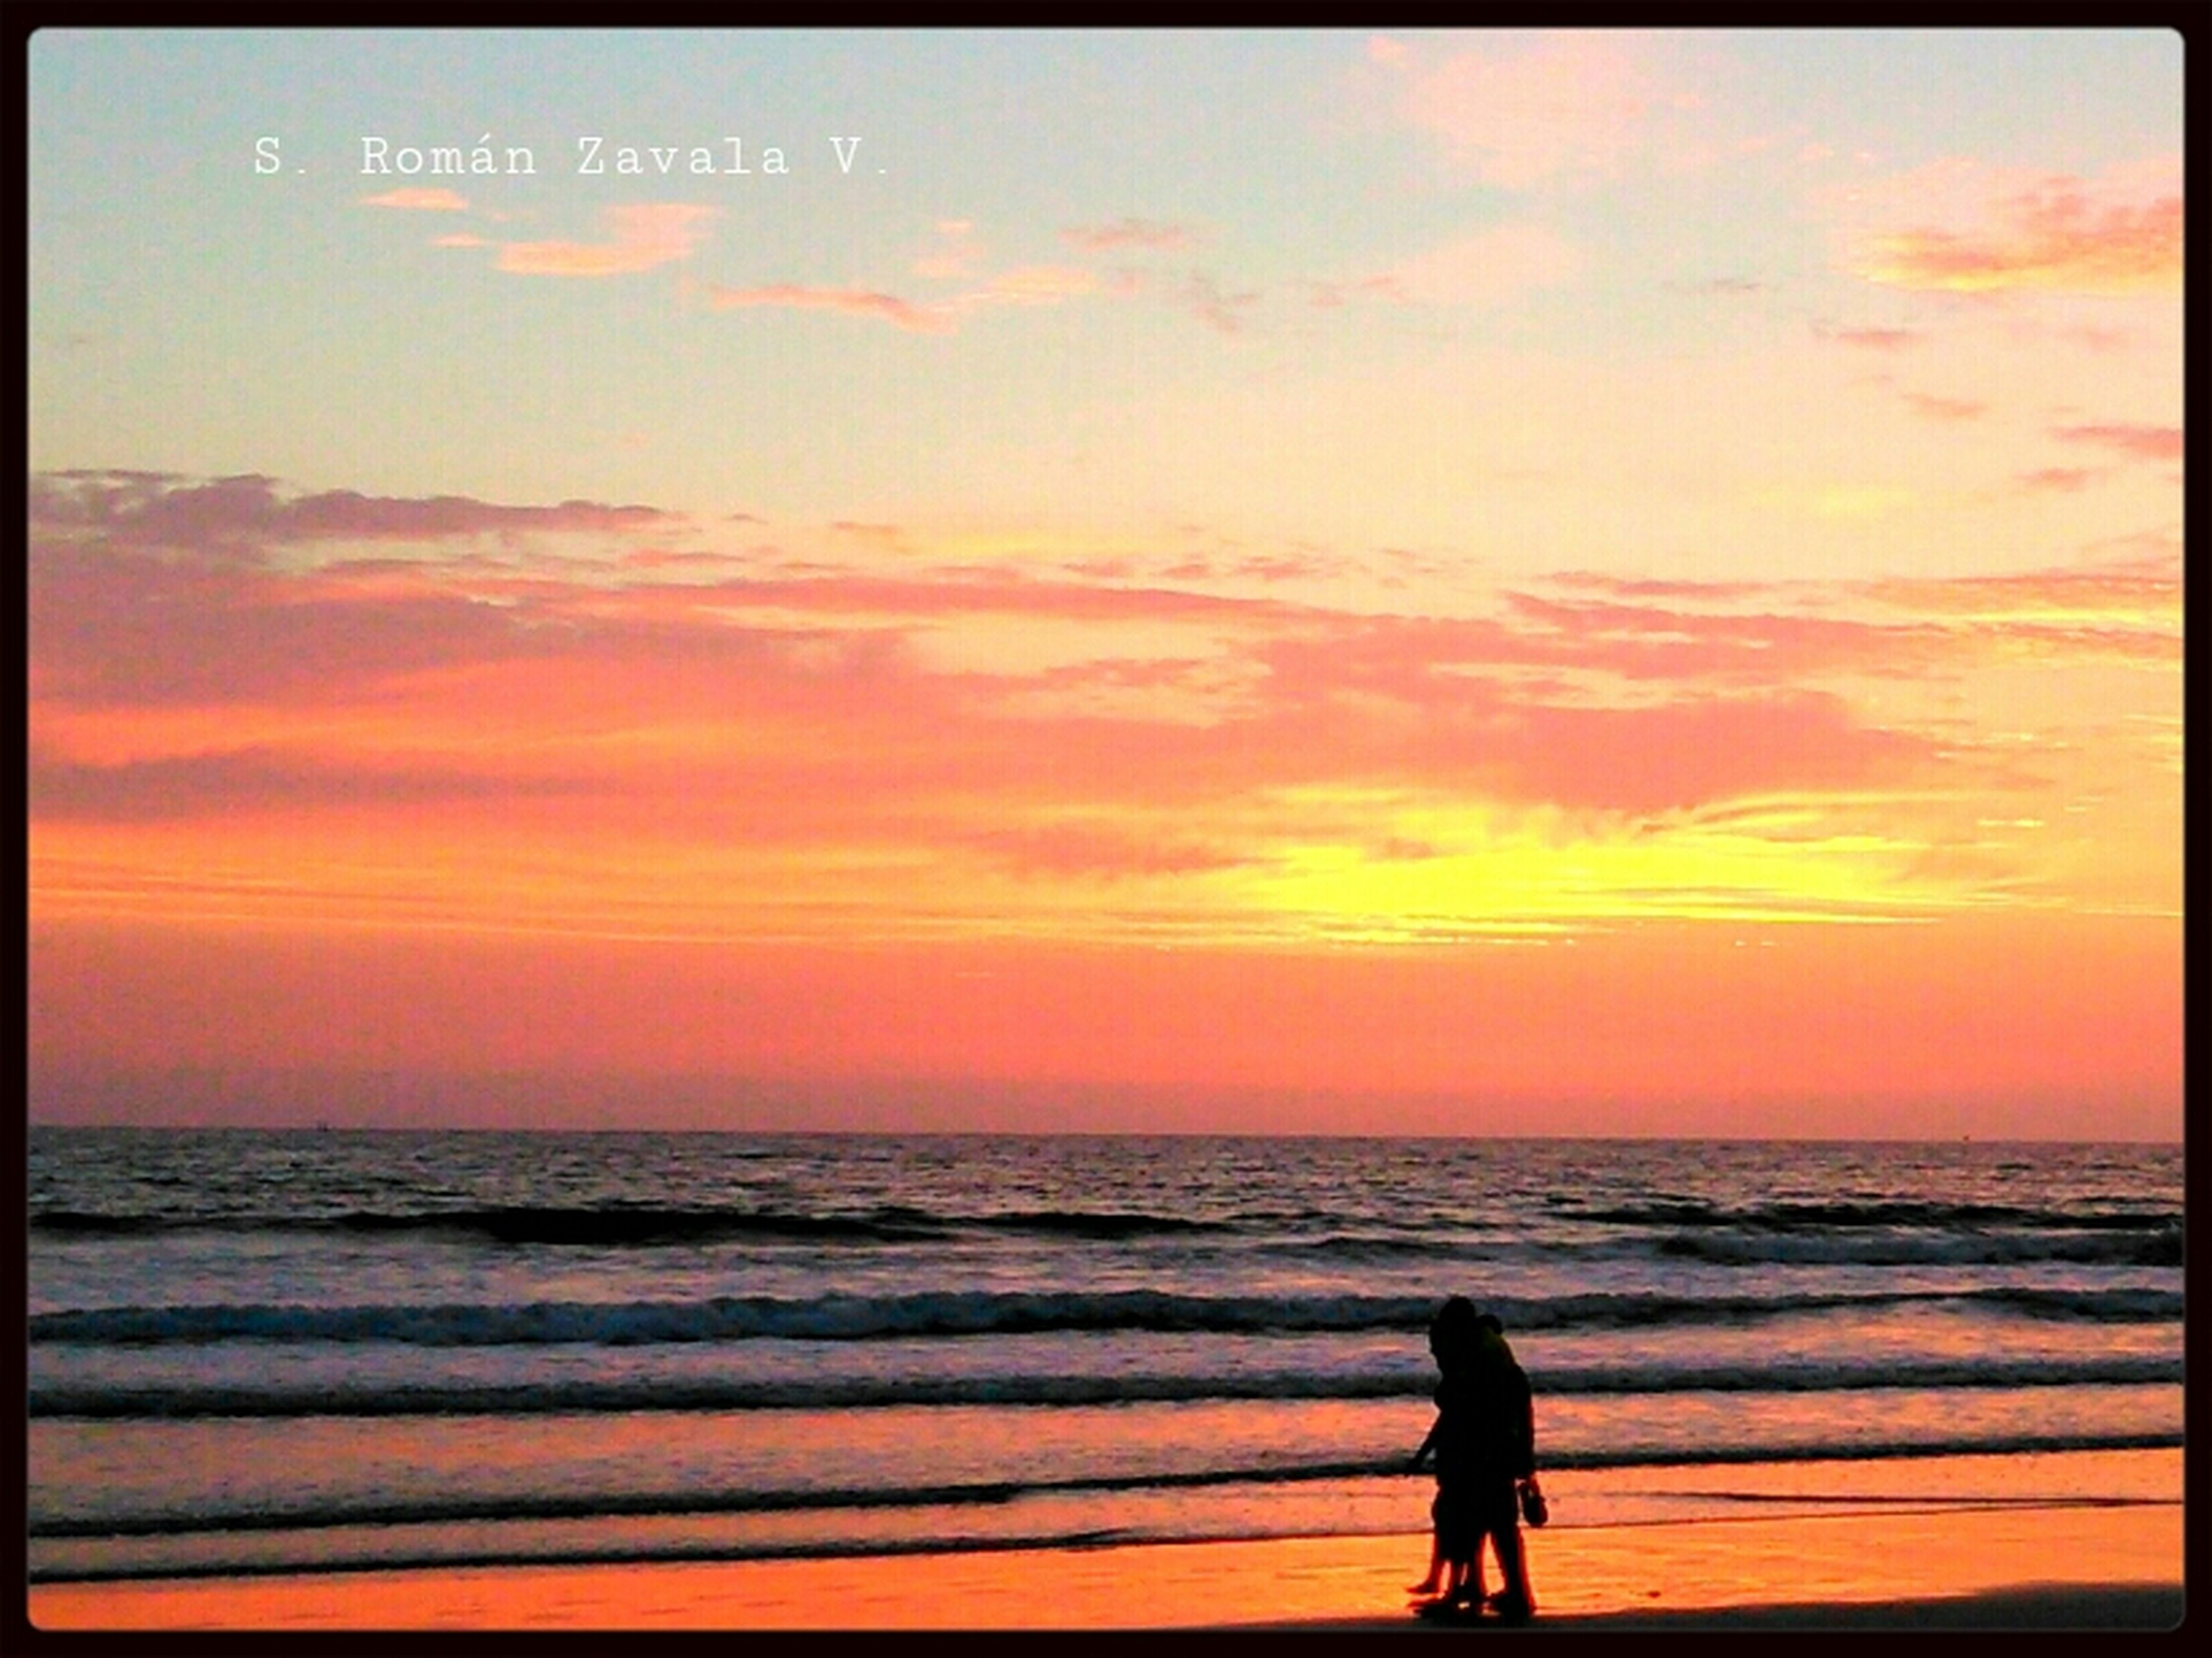 sea, horizon over water, sunset, water, beach, orange color, scenics, sky, transfer print, beauty in nature, silhouette, tranquil scene, shore, tranquility, lifestyles, leisure activity, standing, auto post production filter